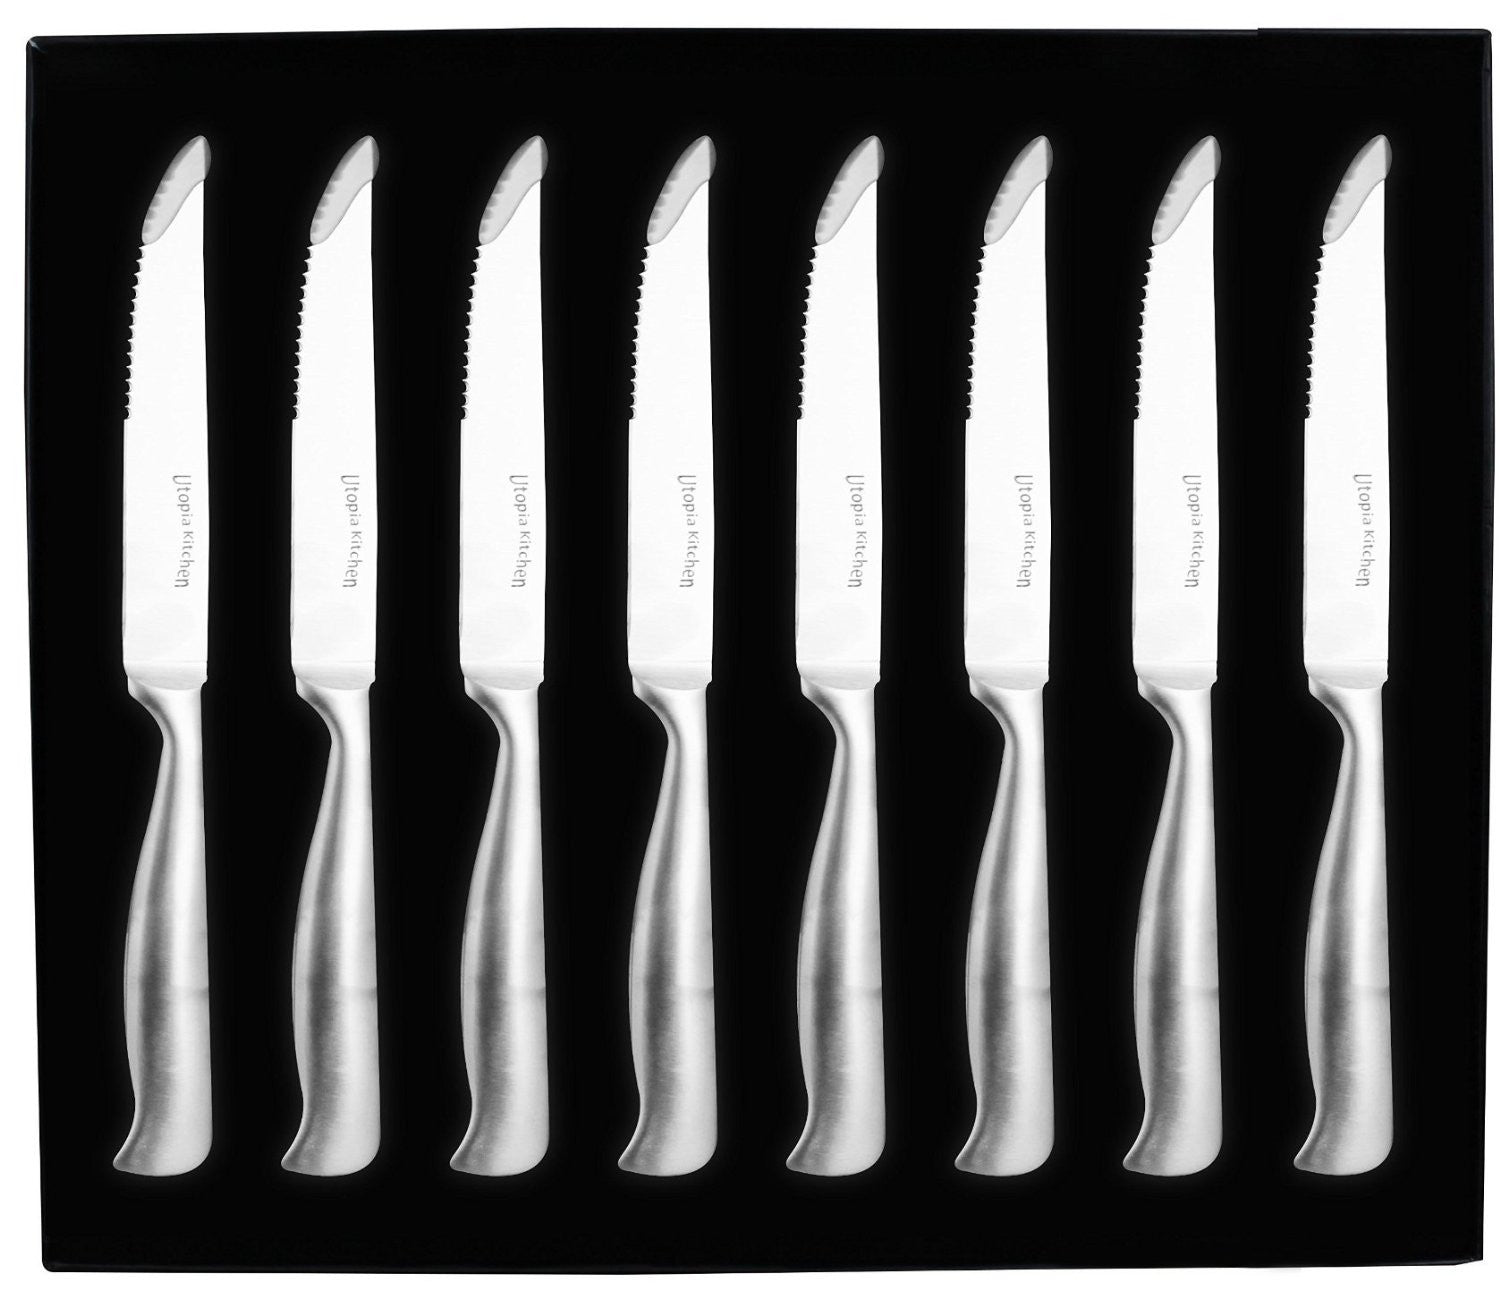 8 Pieces Stainless-Steel Steak Knife